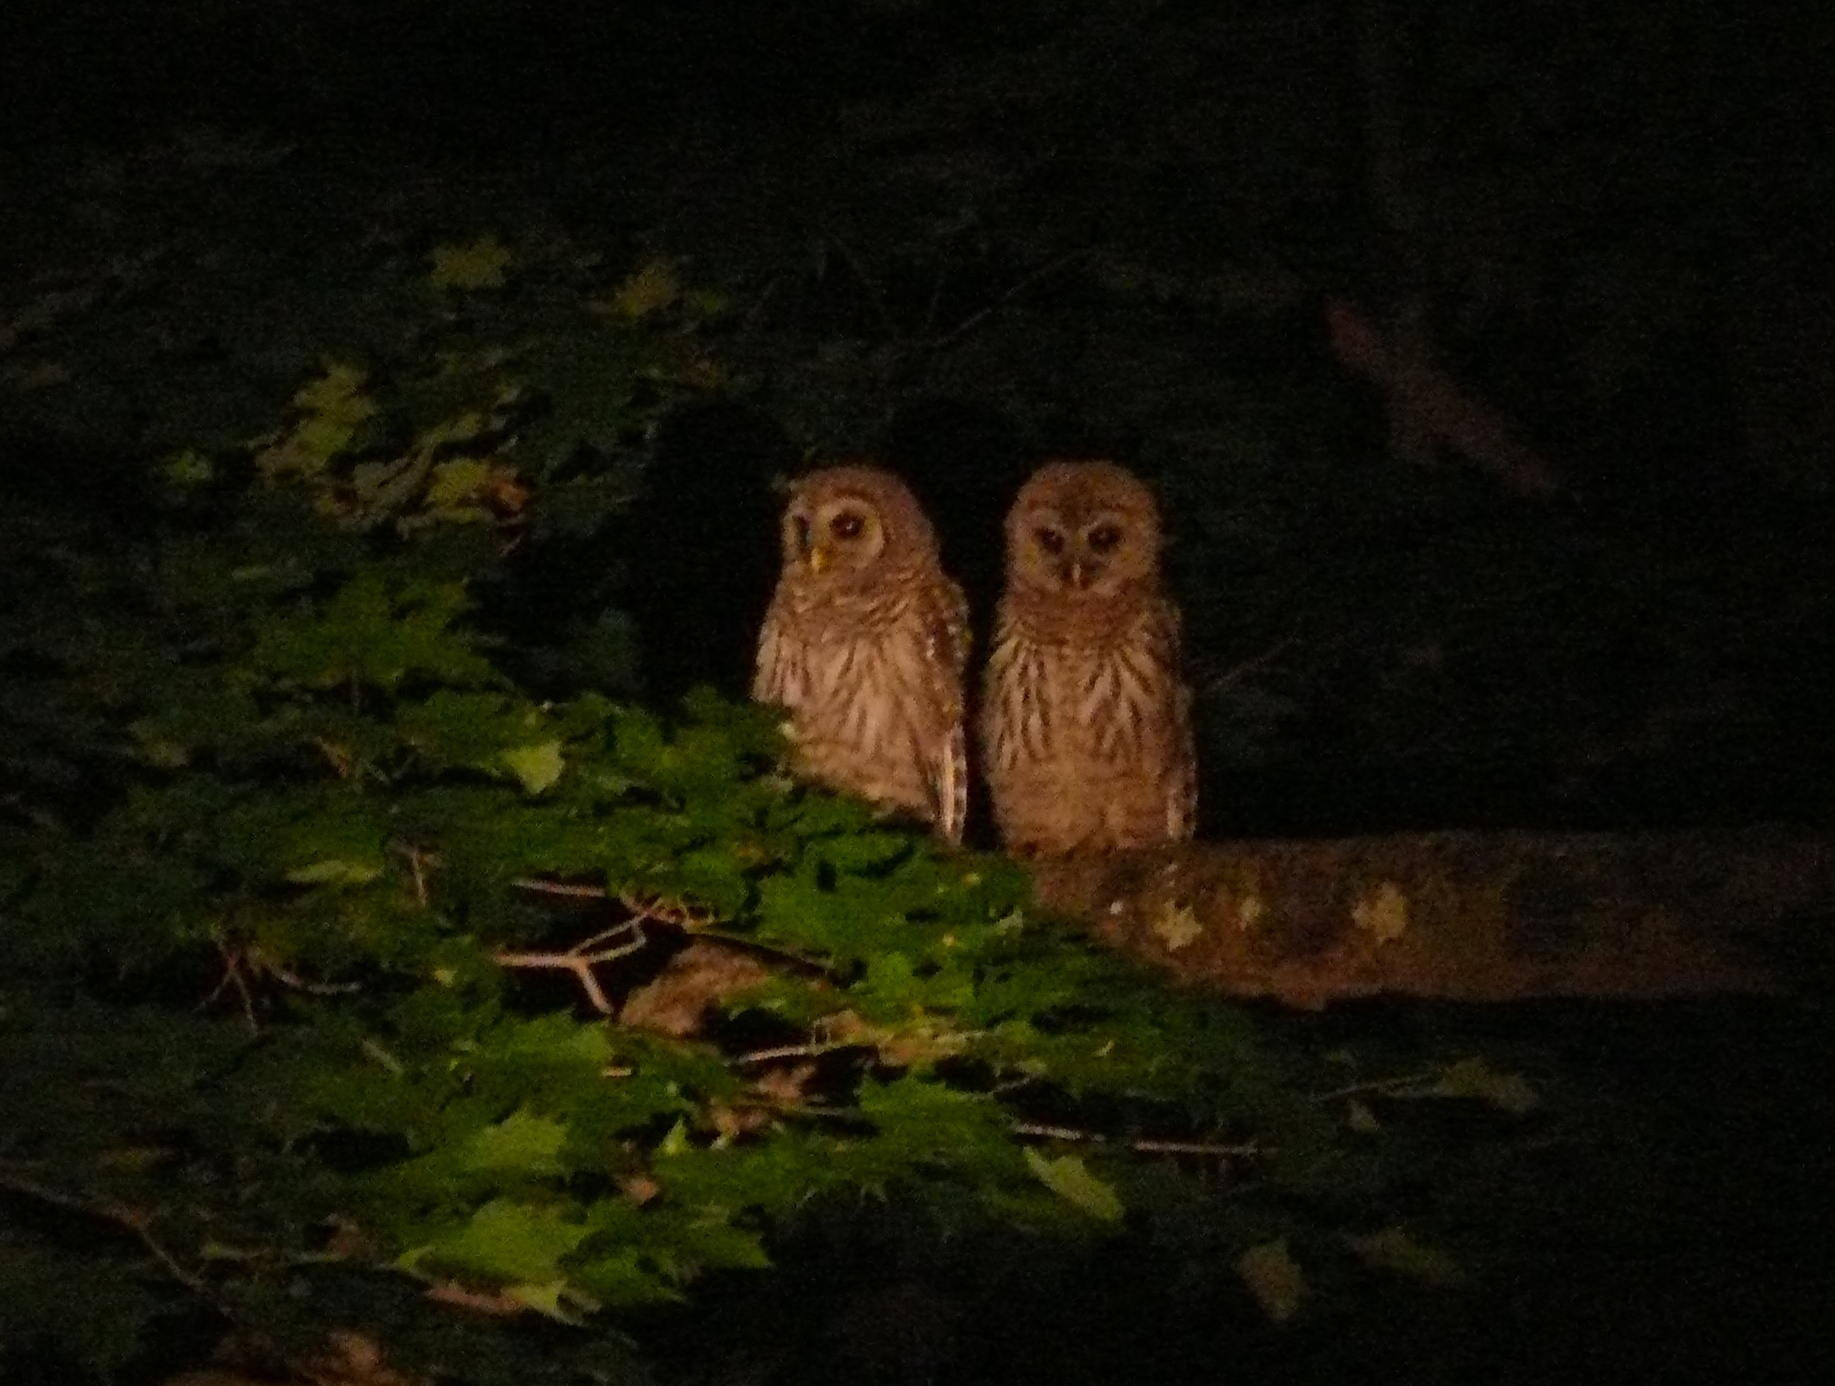 The hoot of the owl,